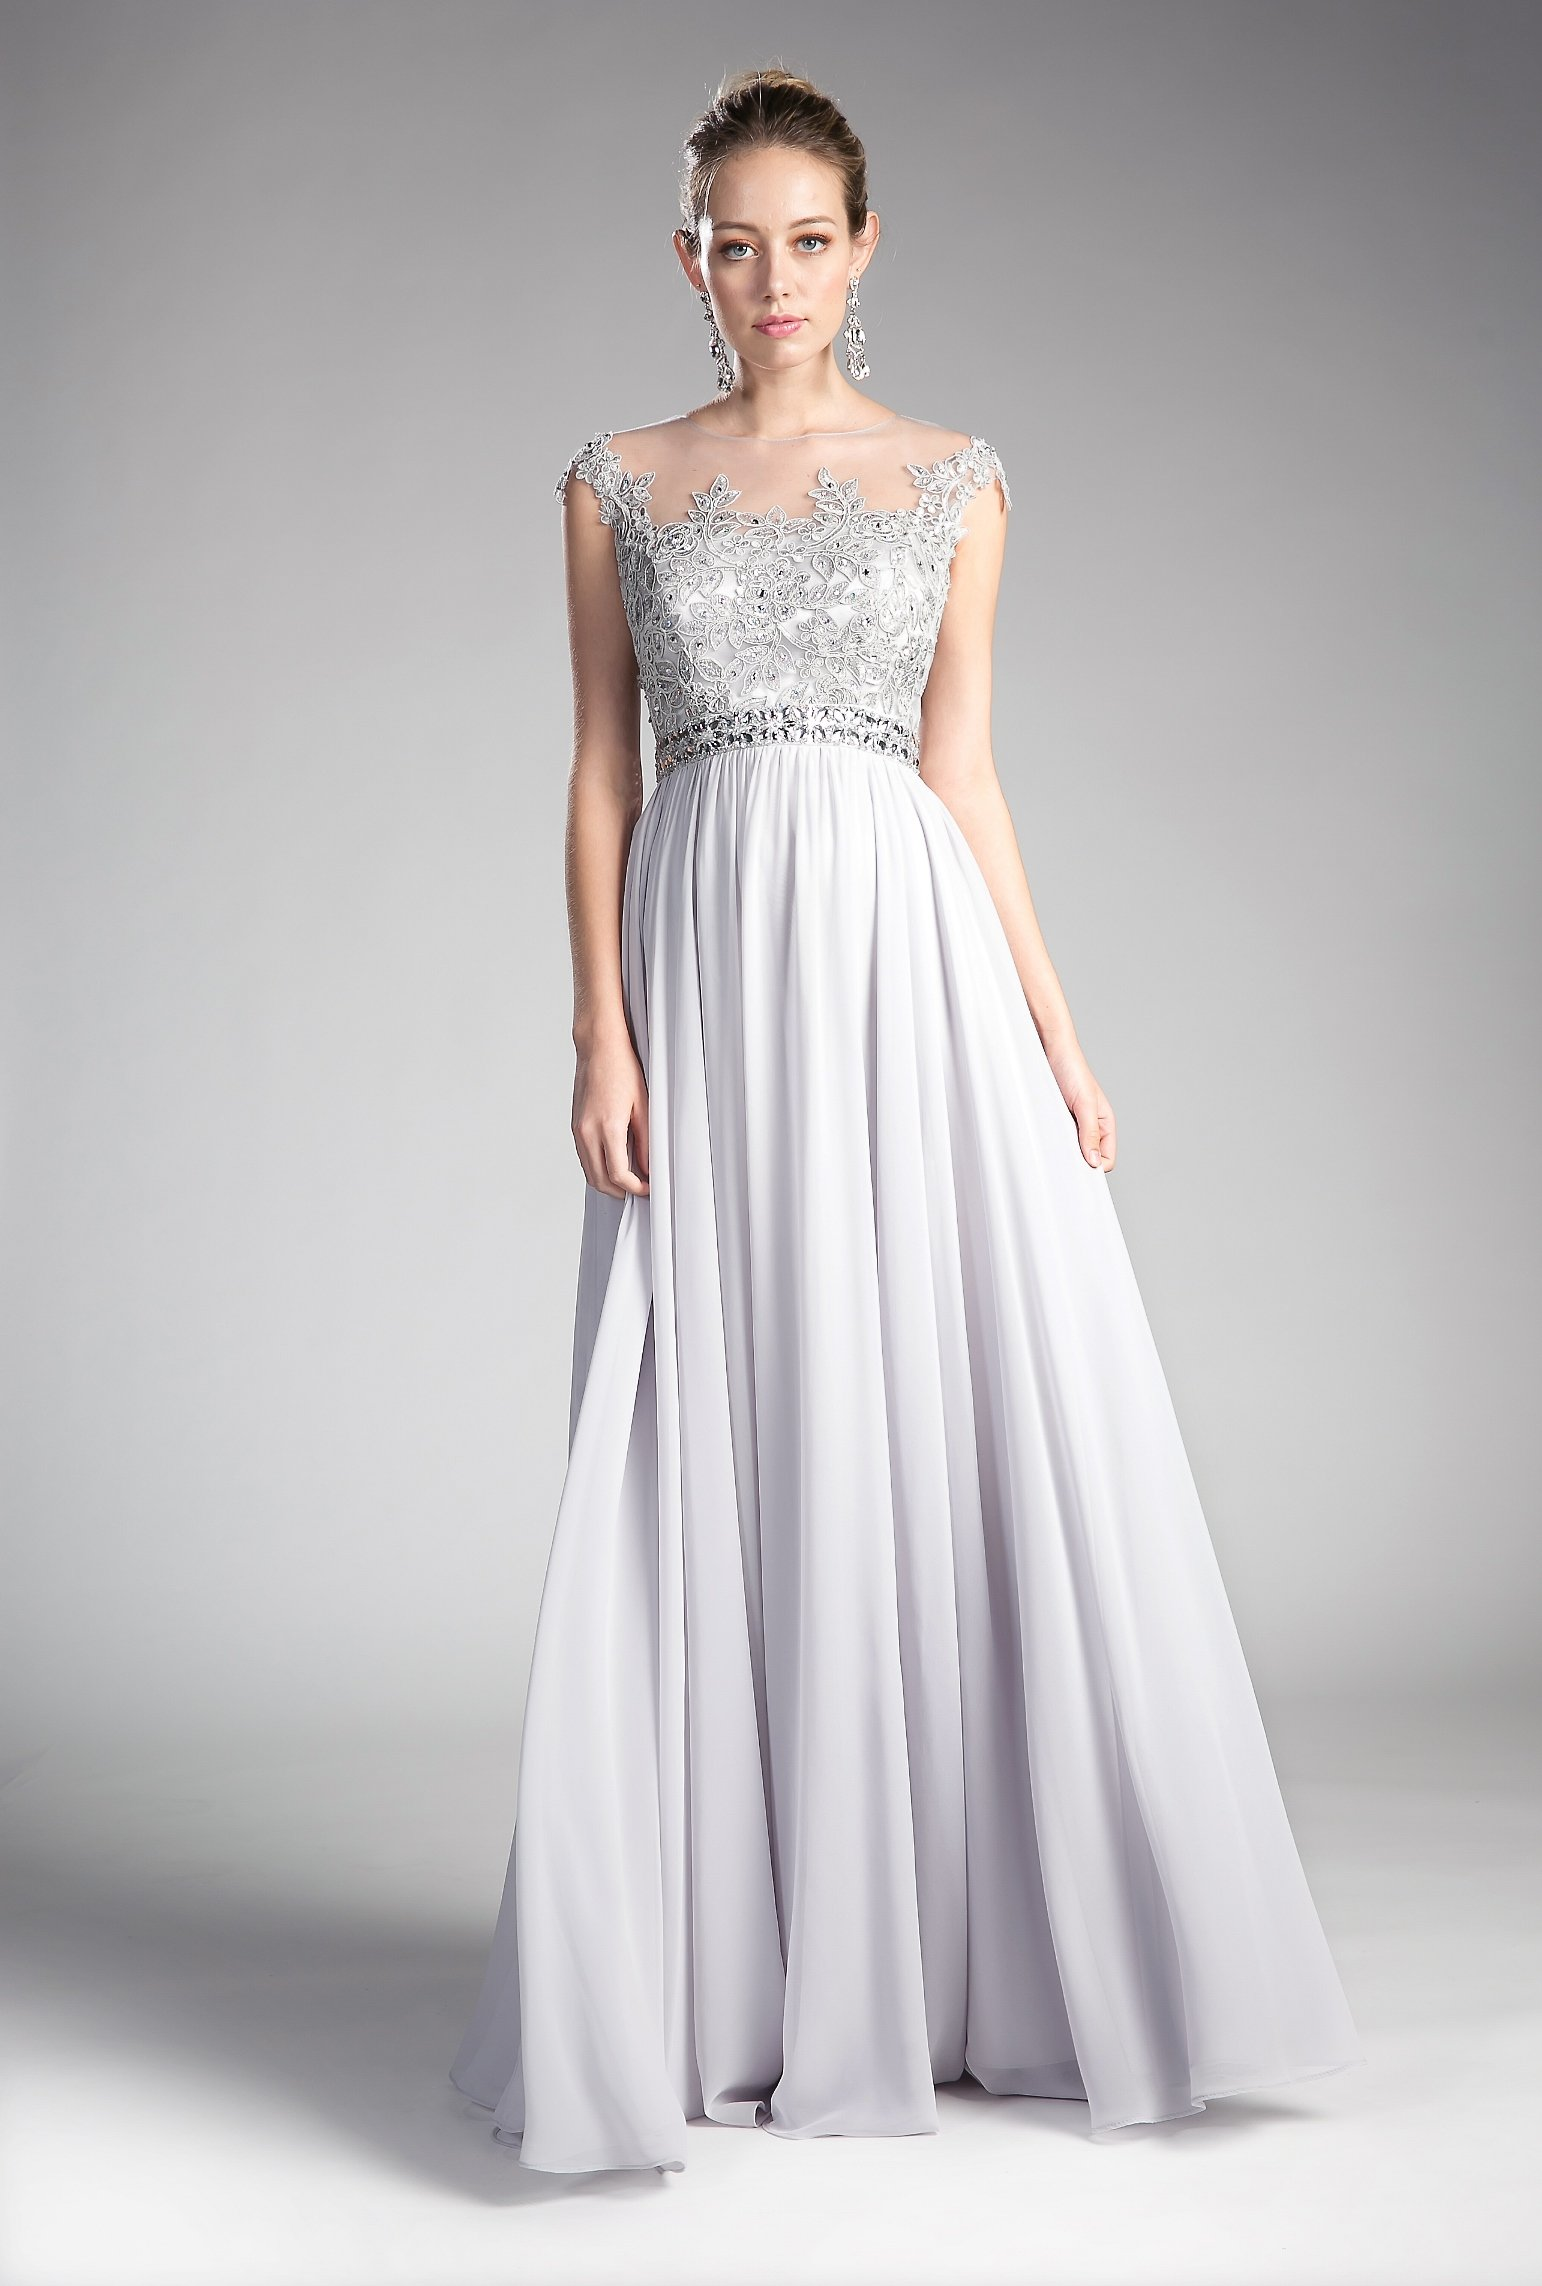 32a4b4e9c5 Long Formal Mother of the Bride Dress in 2019